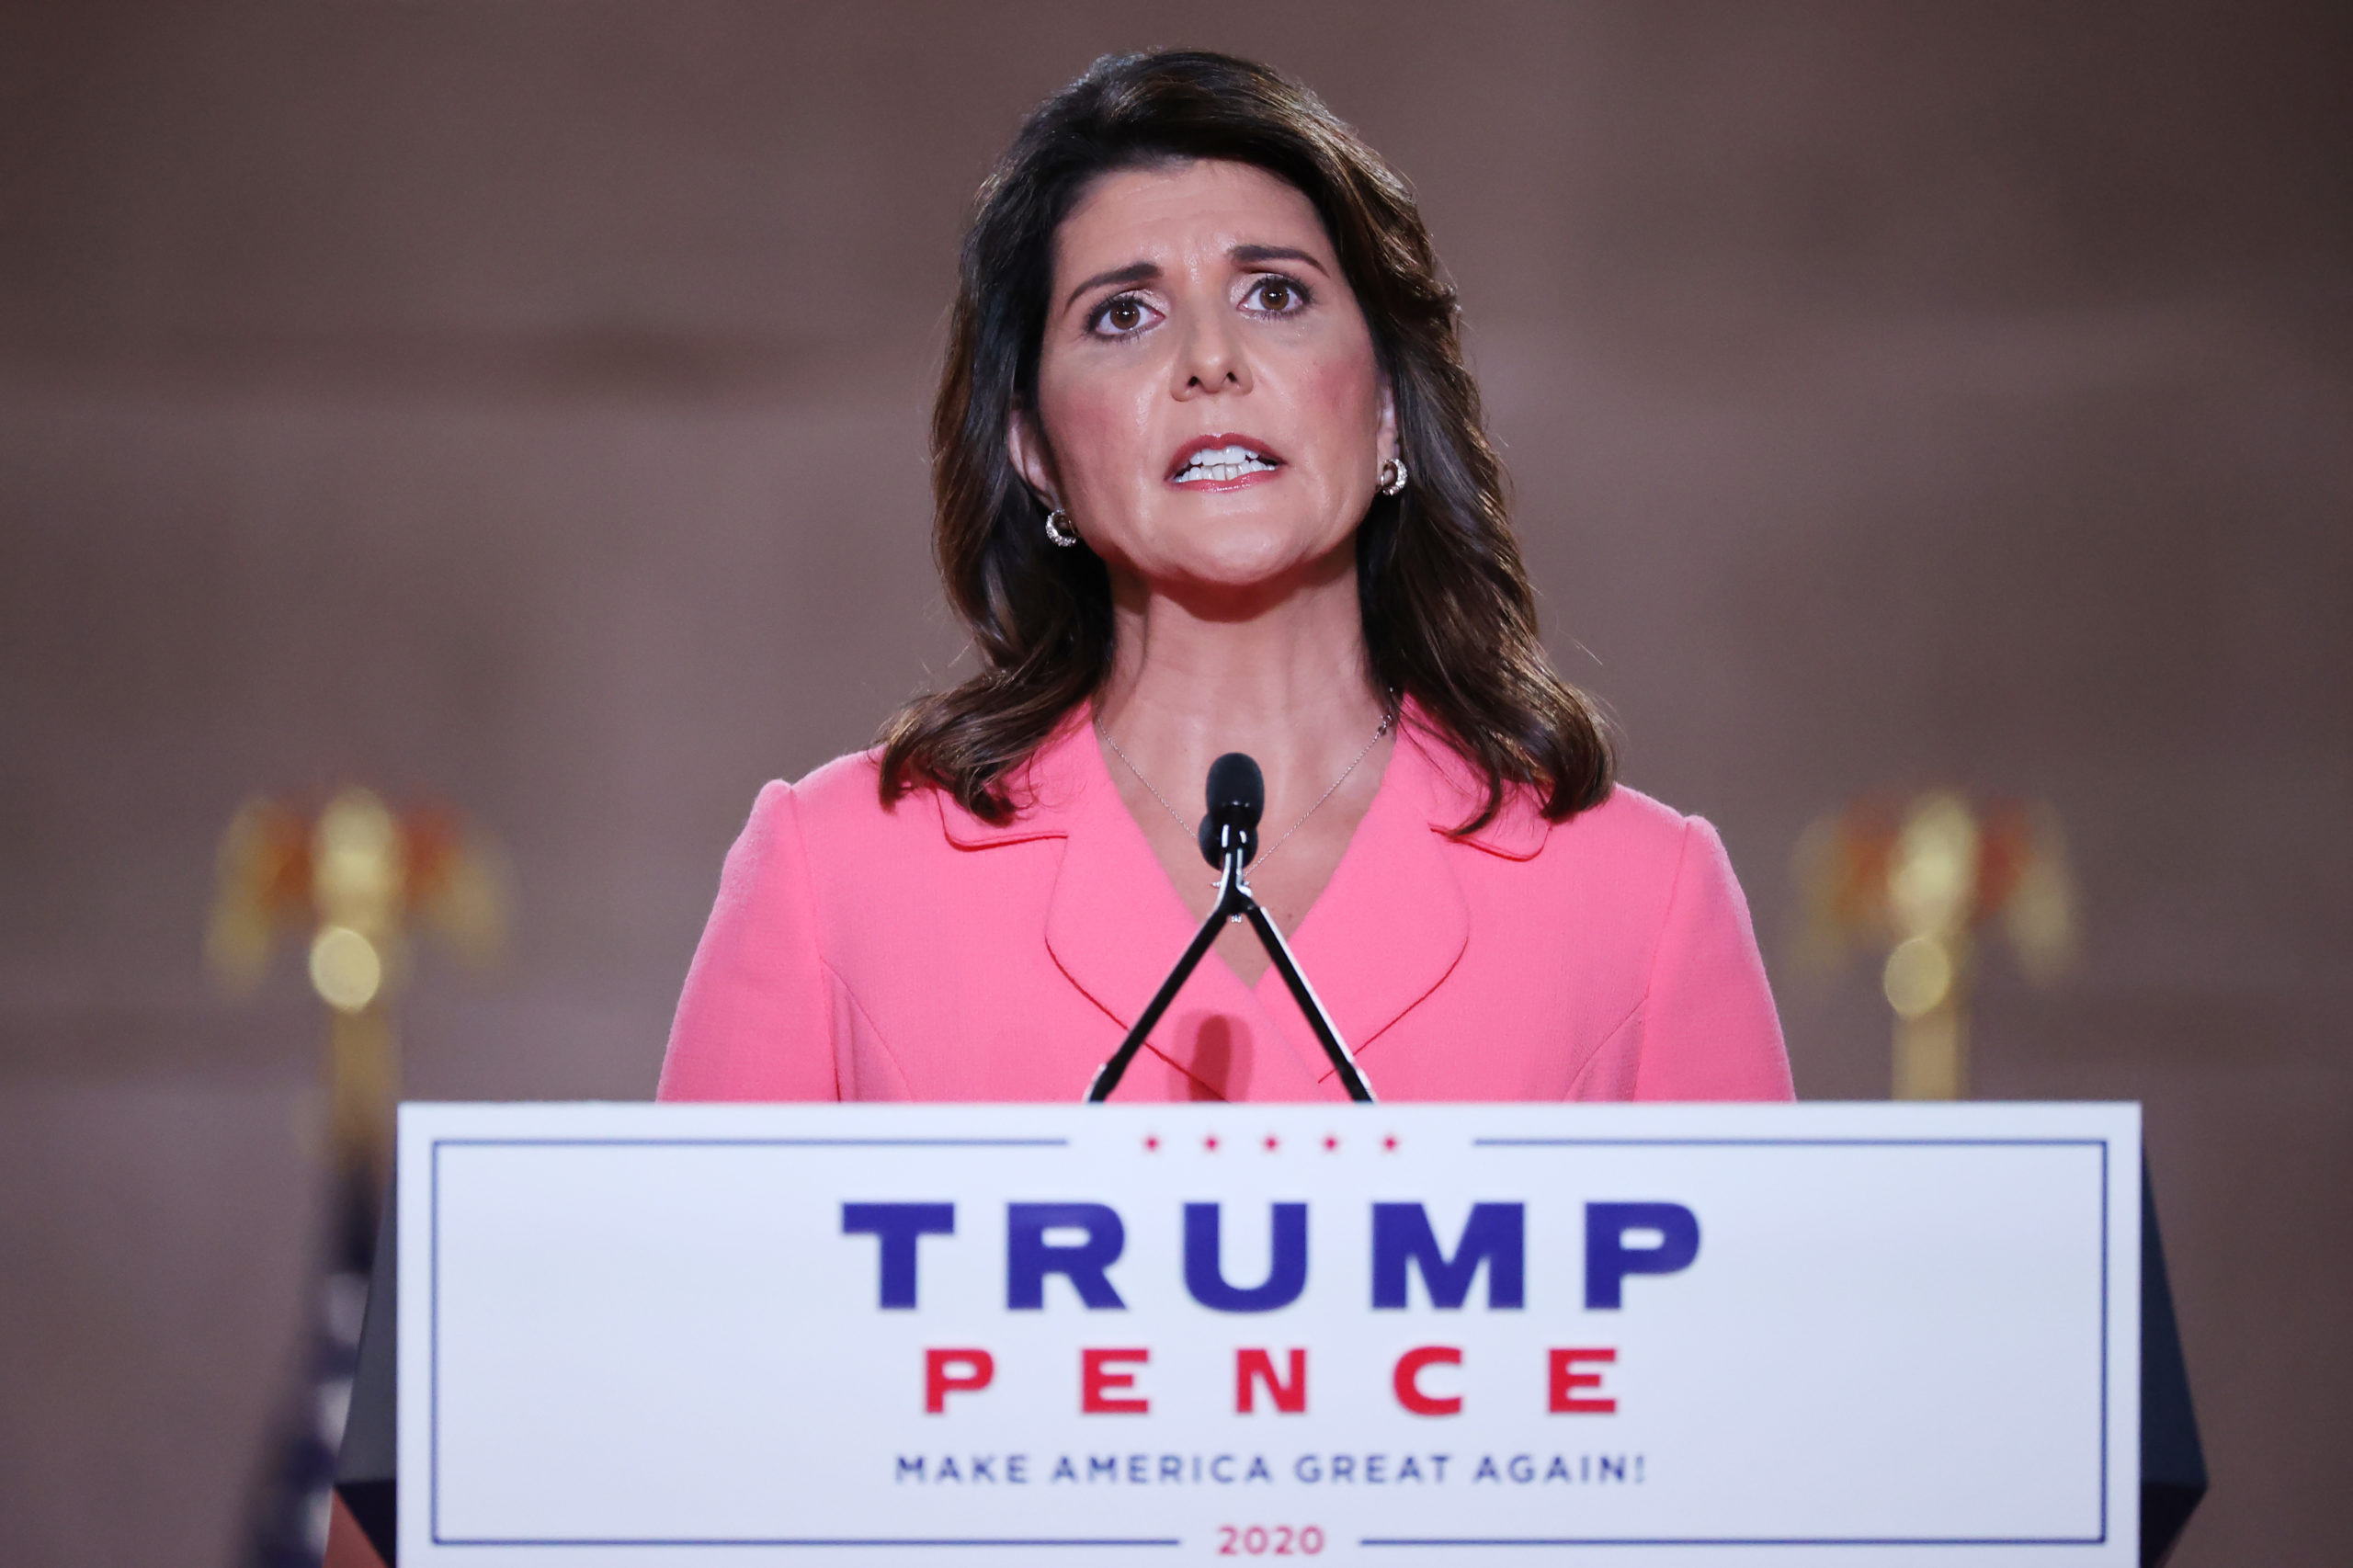 Former U.S. Ambassador to the United Nations Nikki Haley stands on stage in an empty Mellon Auditorium while addressing the Republican National Convention at the Mellon Auditorium on August 24, 2020 in Washington, DC. (Photo by Chip Somodevilla/Getty Images)